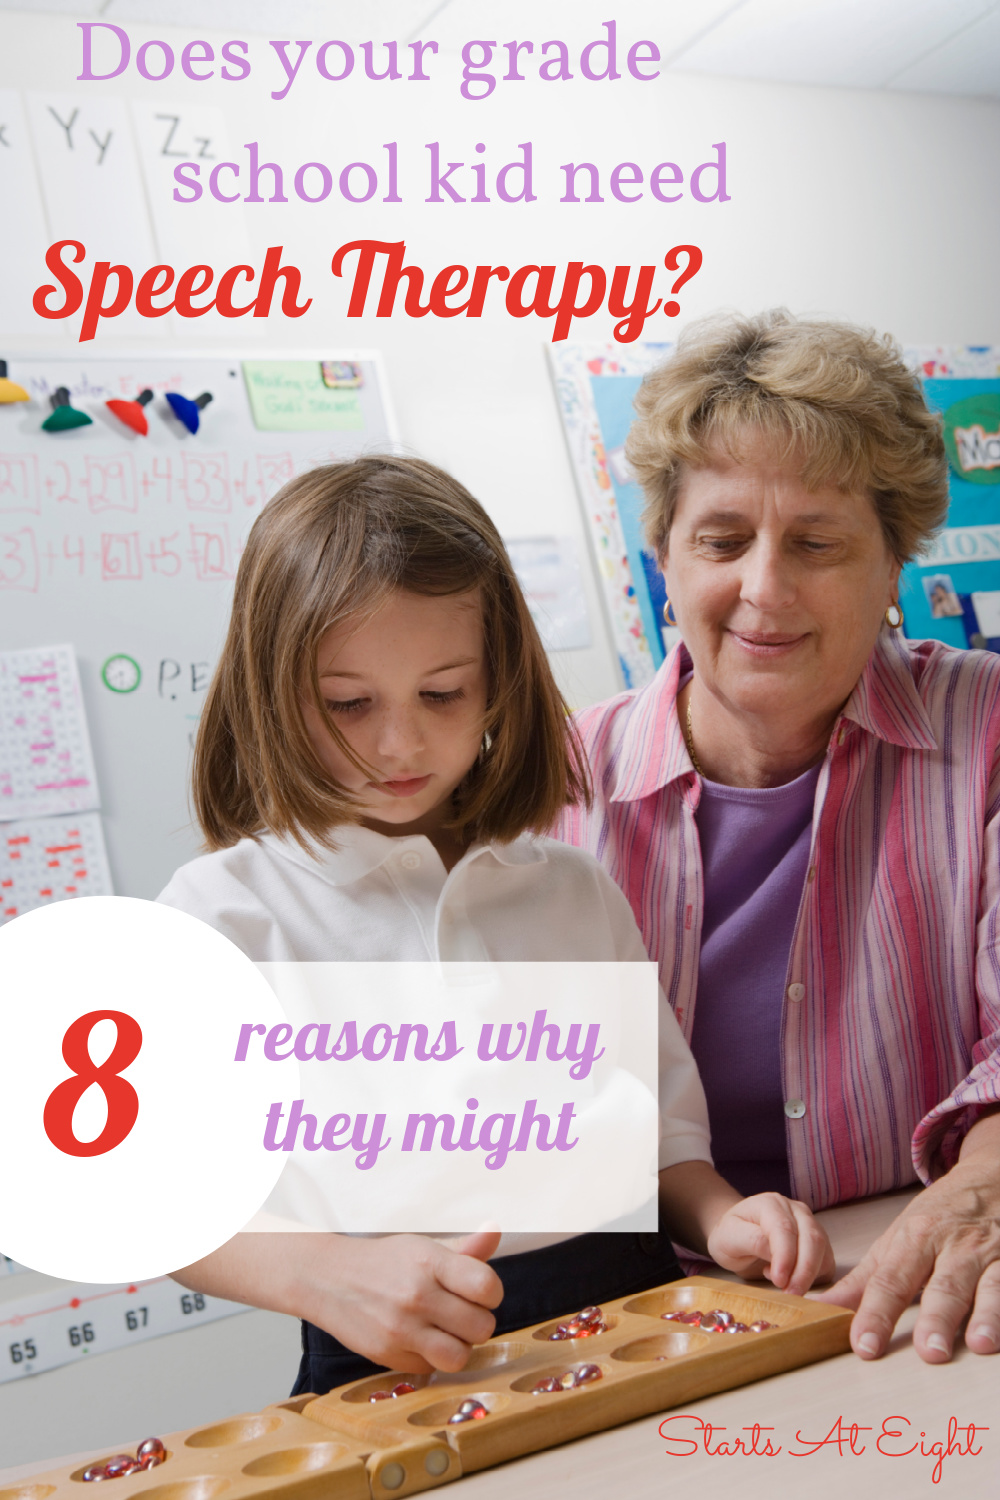 Physical & neurological conditions can hamper learning speech & language skills. Identifying and speech therapy can help them overcome these conditions.